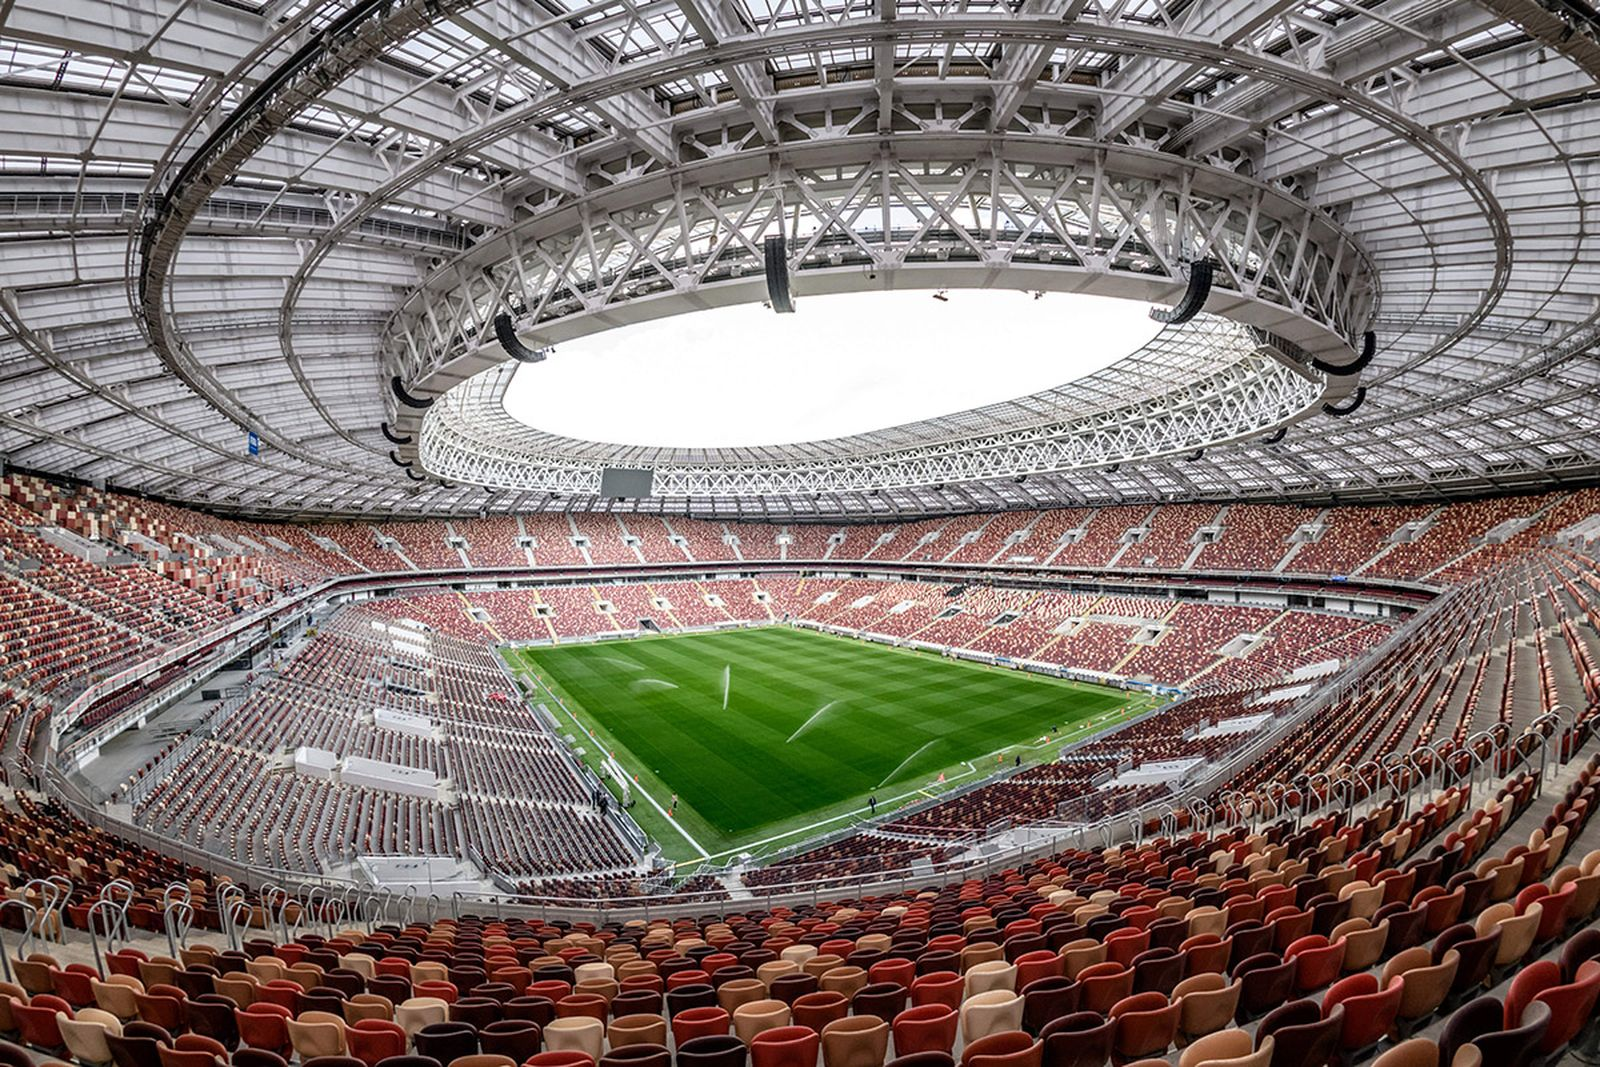 fifa world cup stadiums overview main1 2018 FIFA World Cup Russia 2018